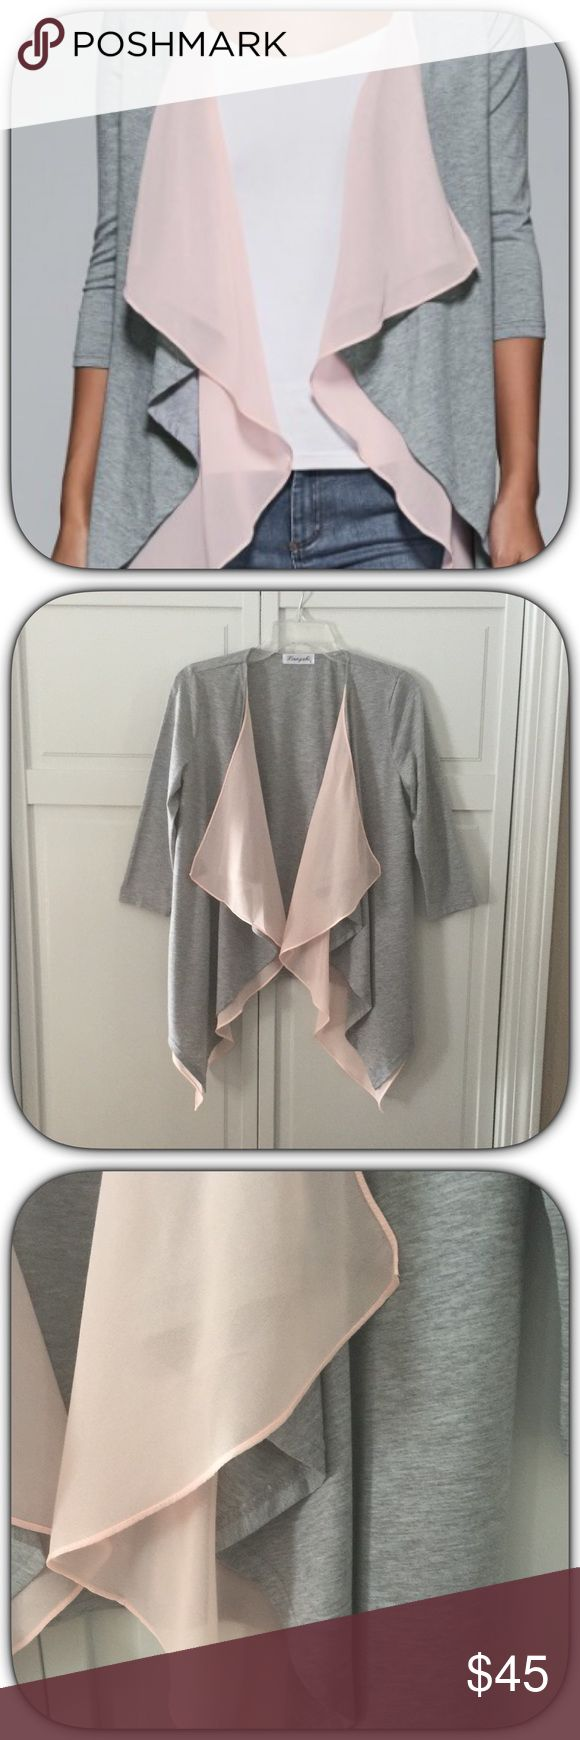 NWT Cute Gray/Pink Layered Jersey/Chiffon Cardigan This is so soft and feminine! I was really disappointed it did not fit me right! It is really beautiful! A move closet piece for sure! The tag says large but fits like a medium Boutique Sweaters Cardigans